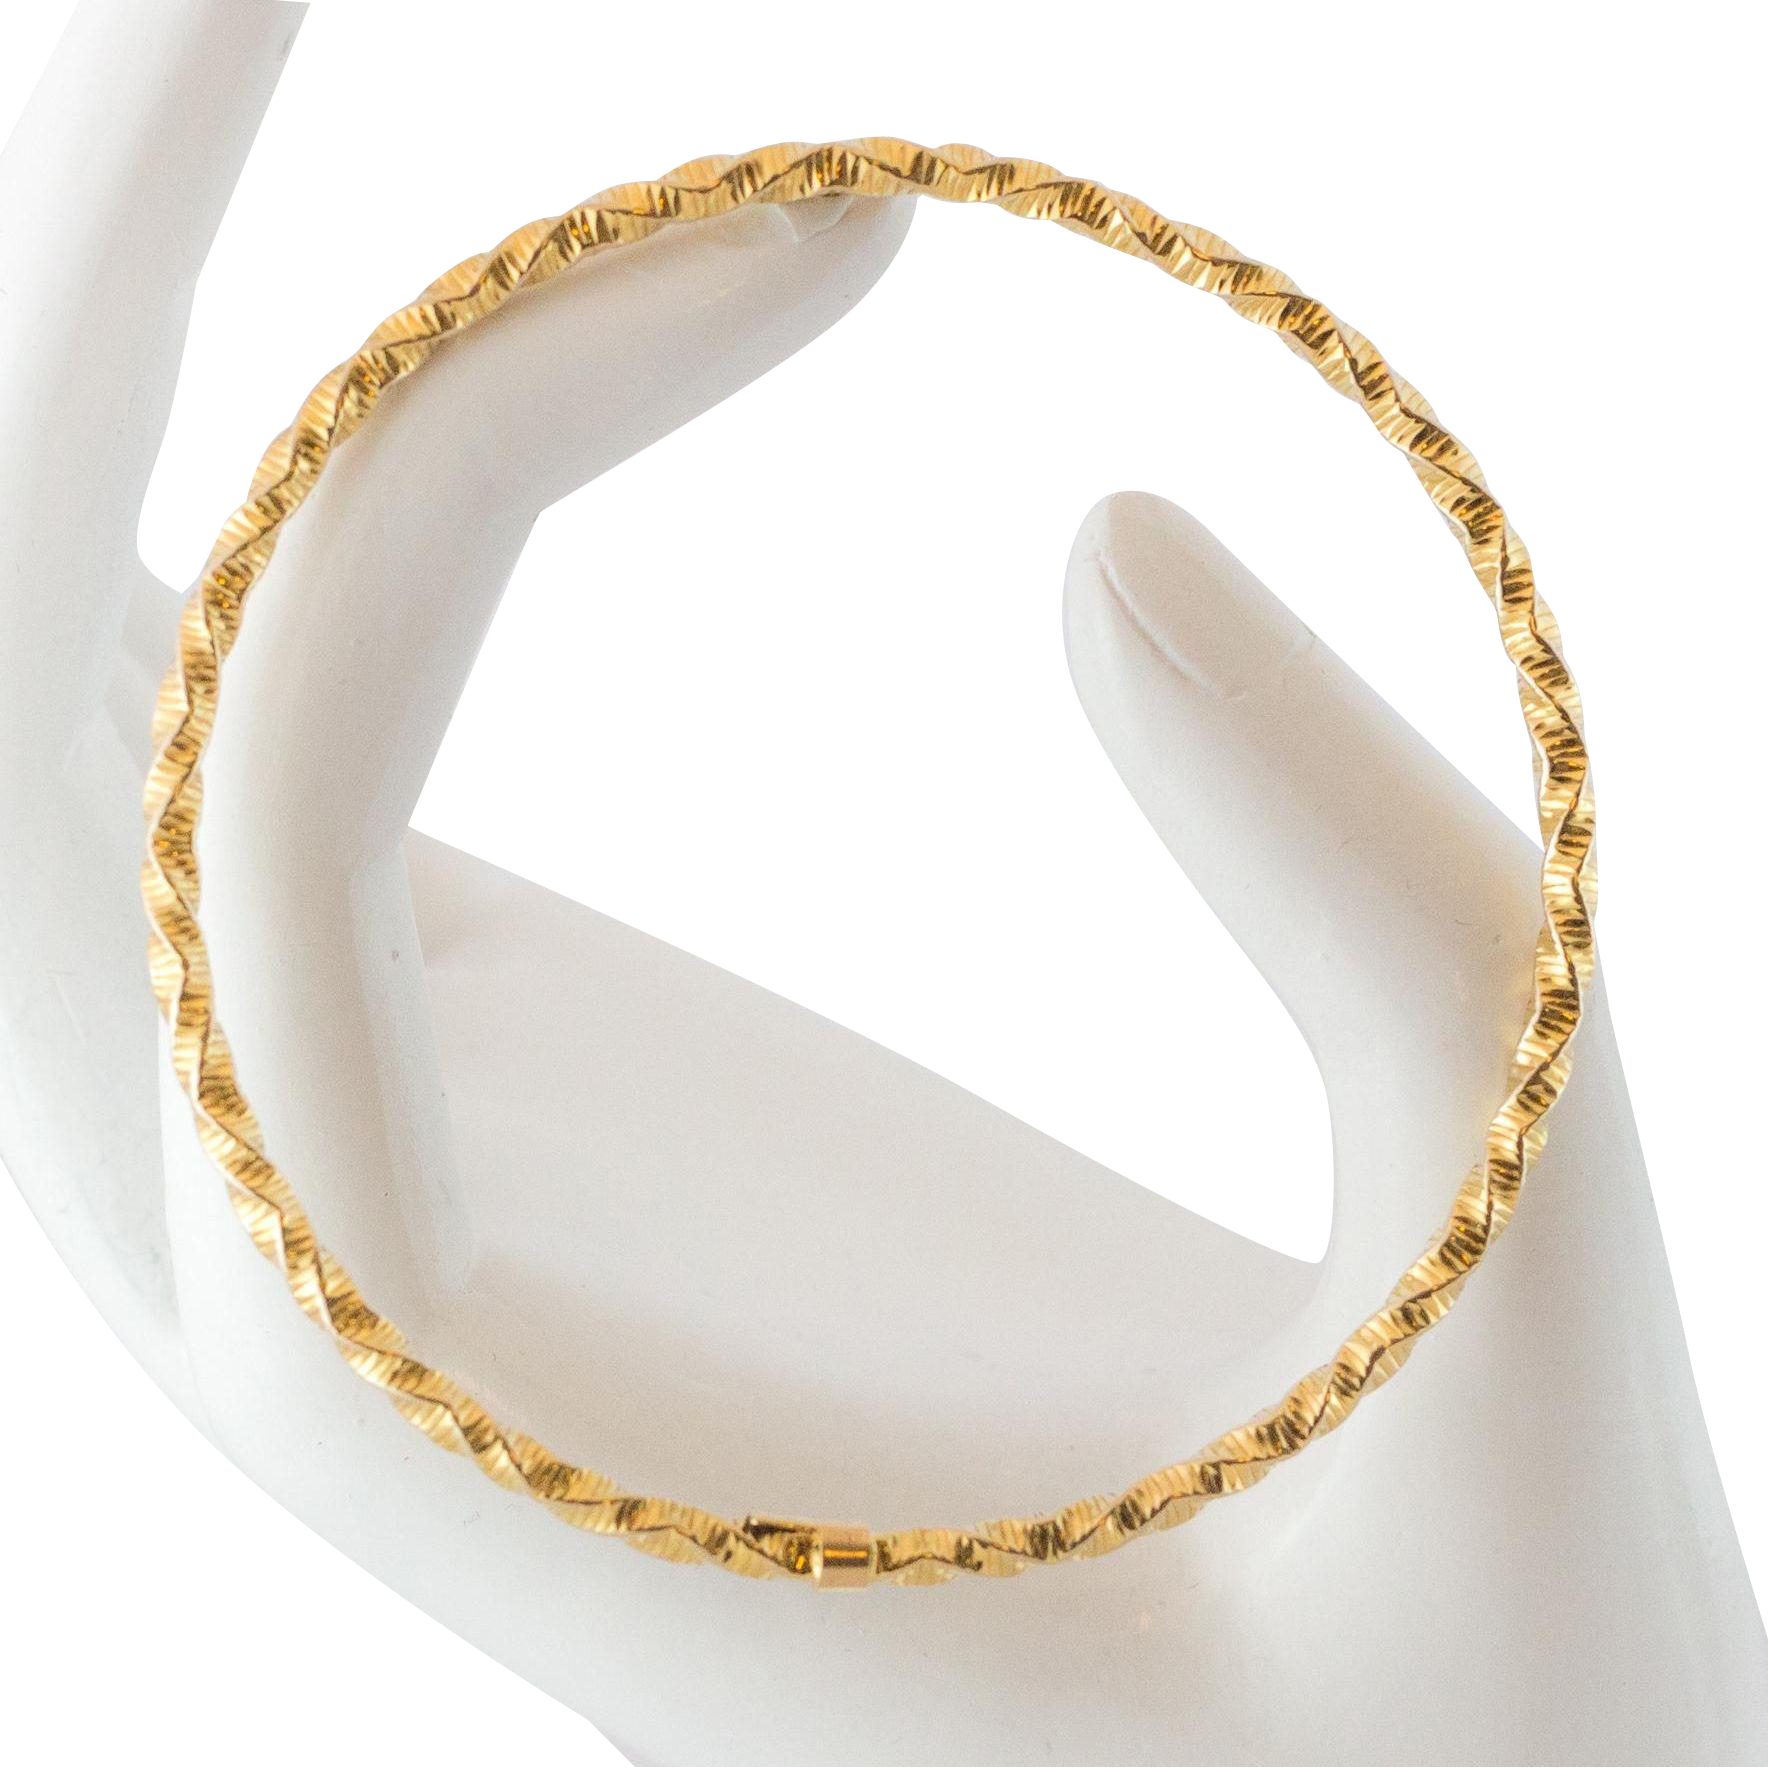 diamond bangle bracelets karat clasp bangles accents pin and yellow with box closure gold bracelet